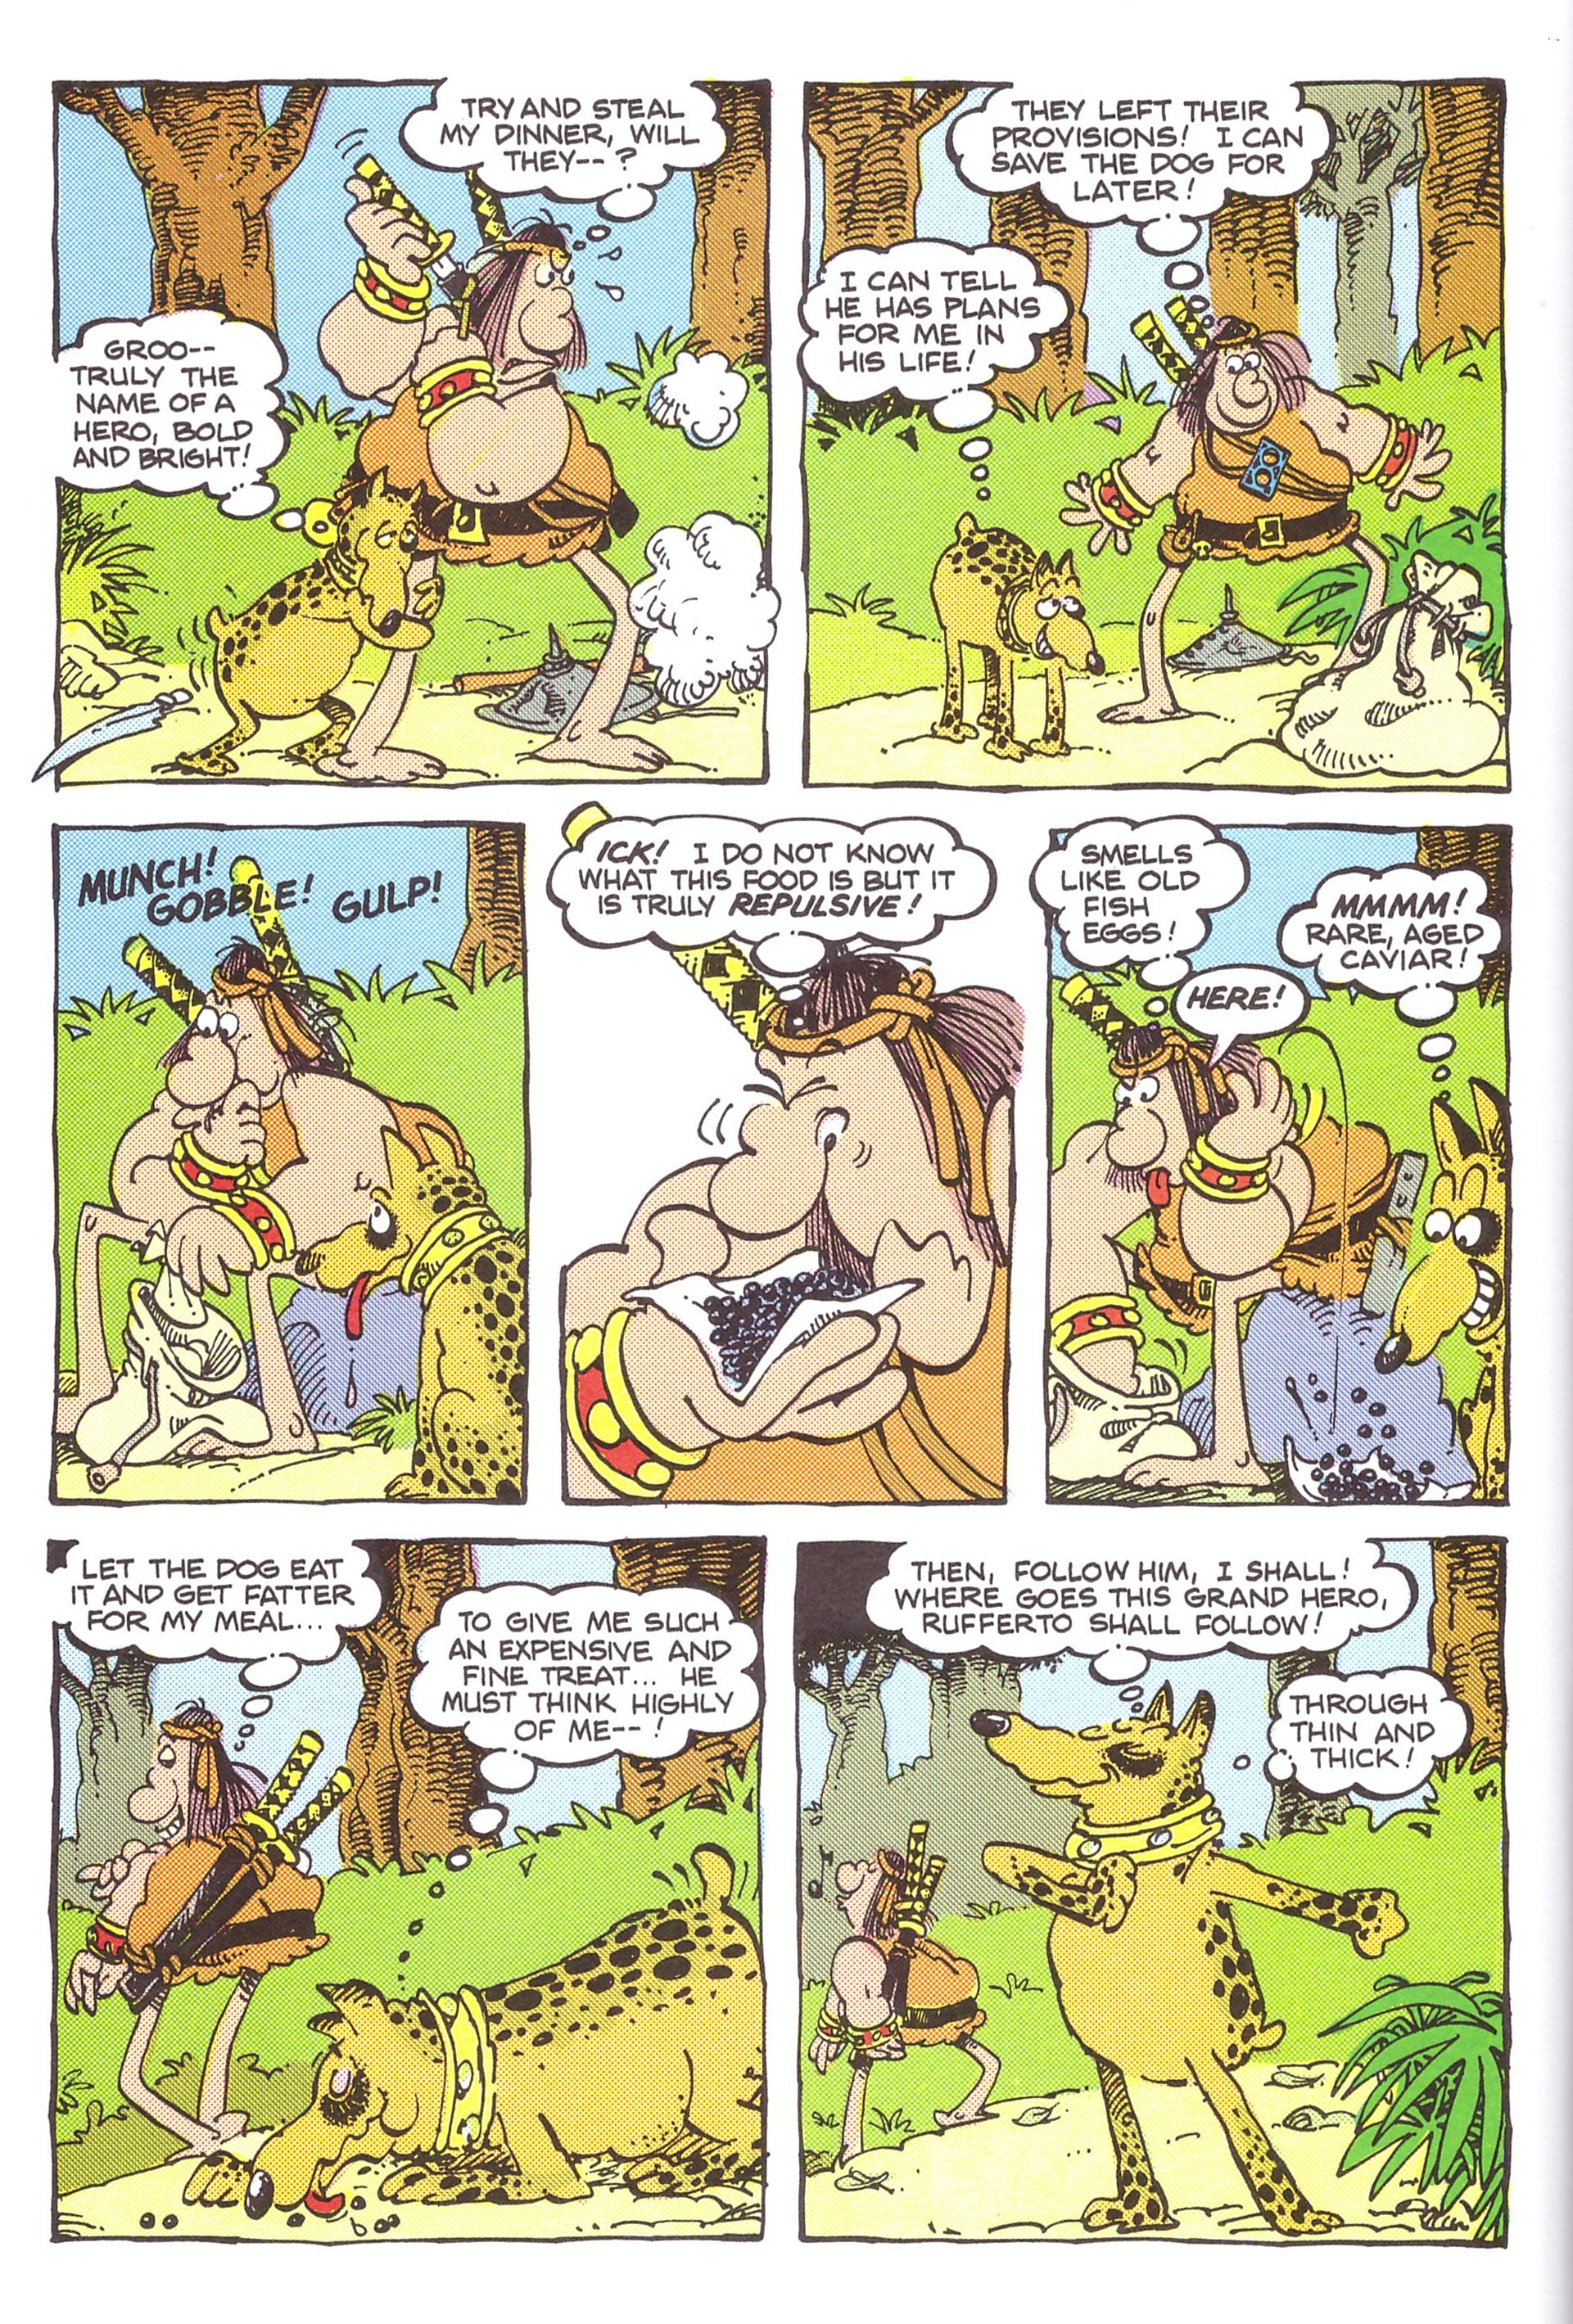 The Groo Houndbook review